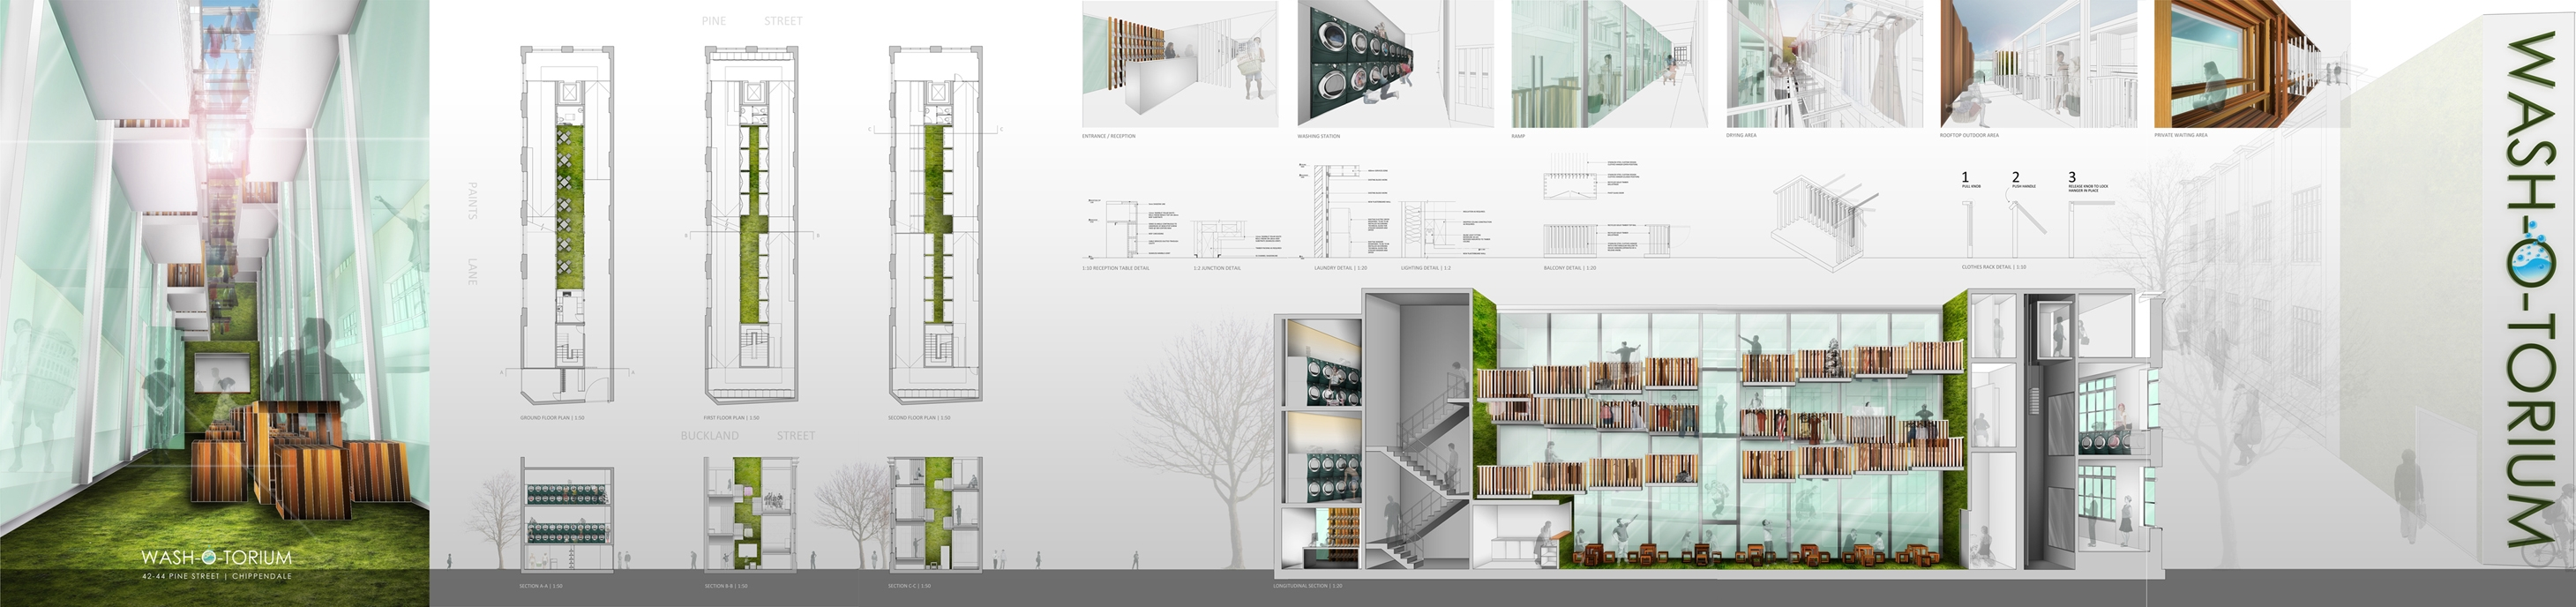 sites for architecture thesis What is the best possible topic for a thesis (final year architecture) is a film (actors, live on site) dissertation in architecture if my thesis project is.